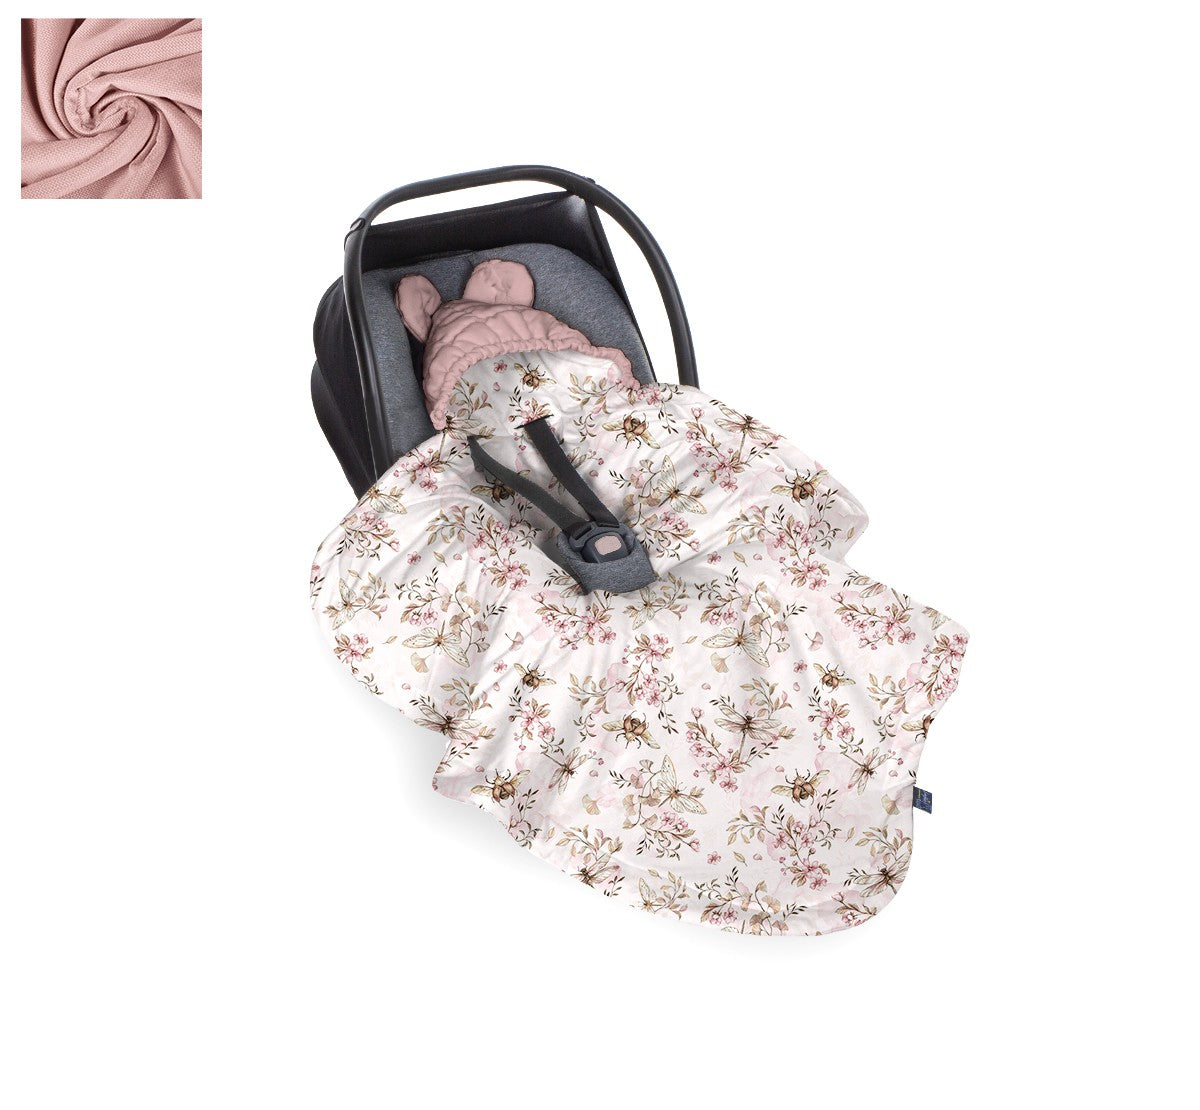 BabySteps Car Seat Blanket (Cherry Light/Sepia Rose)